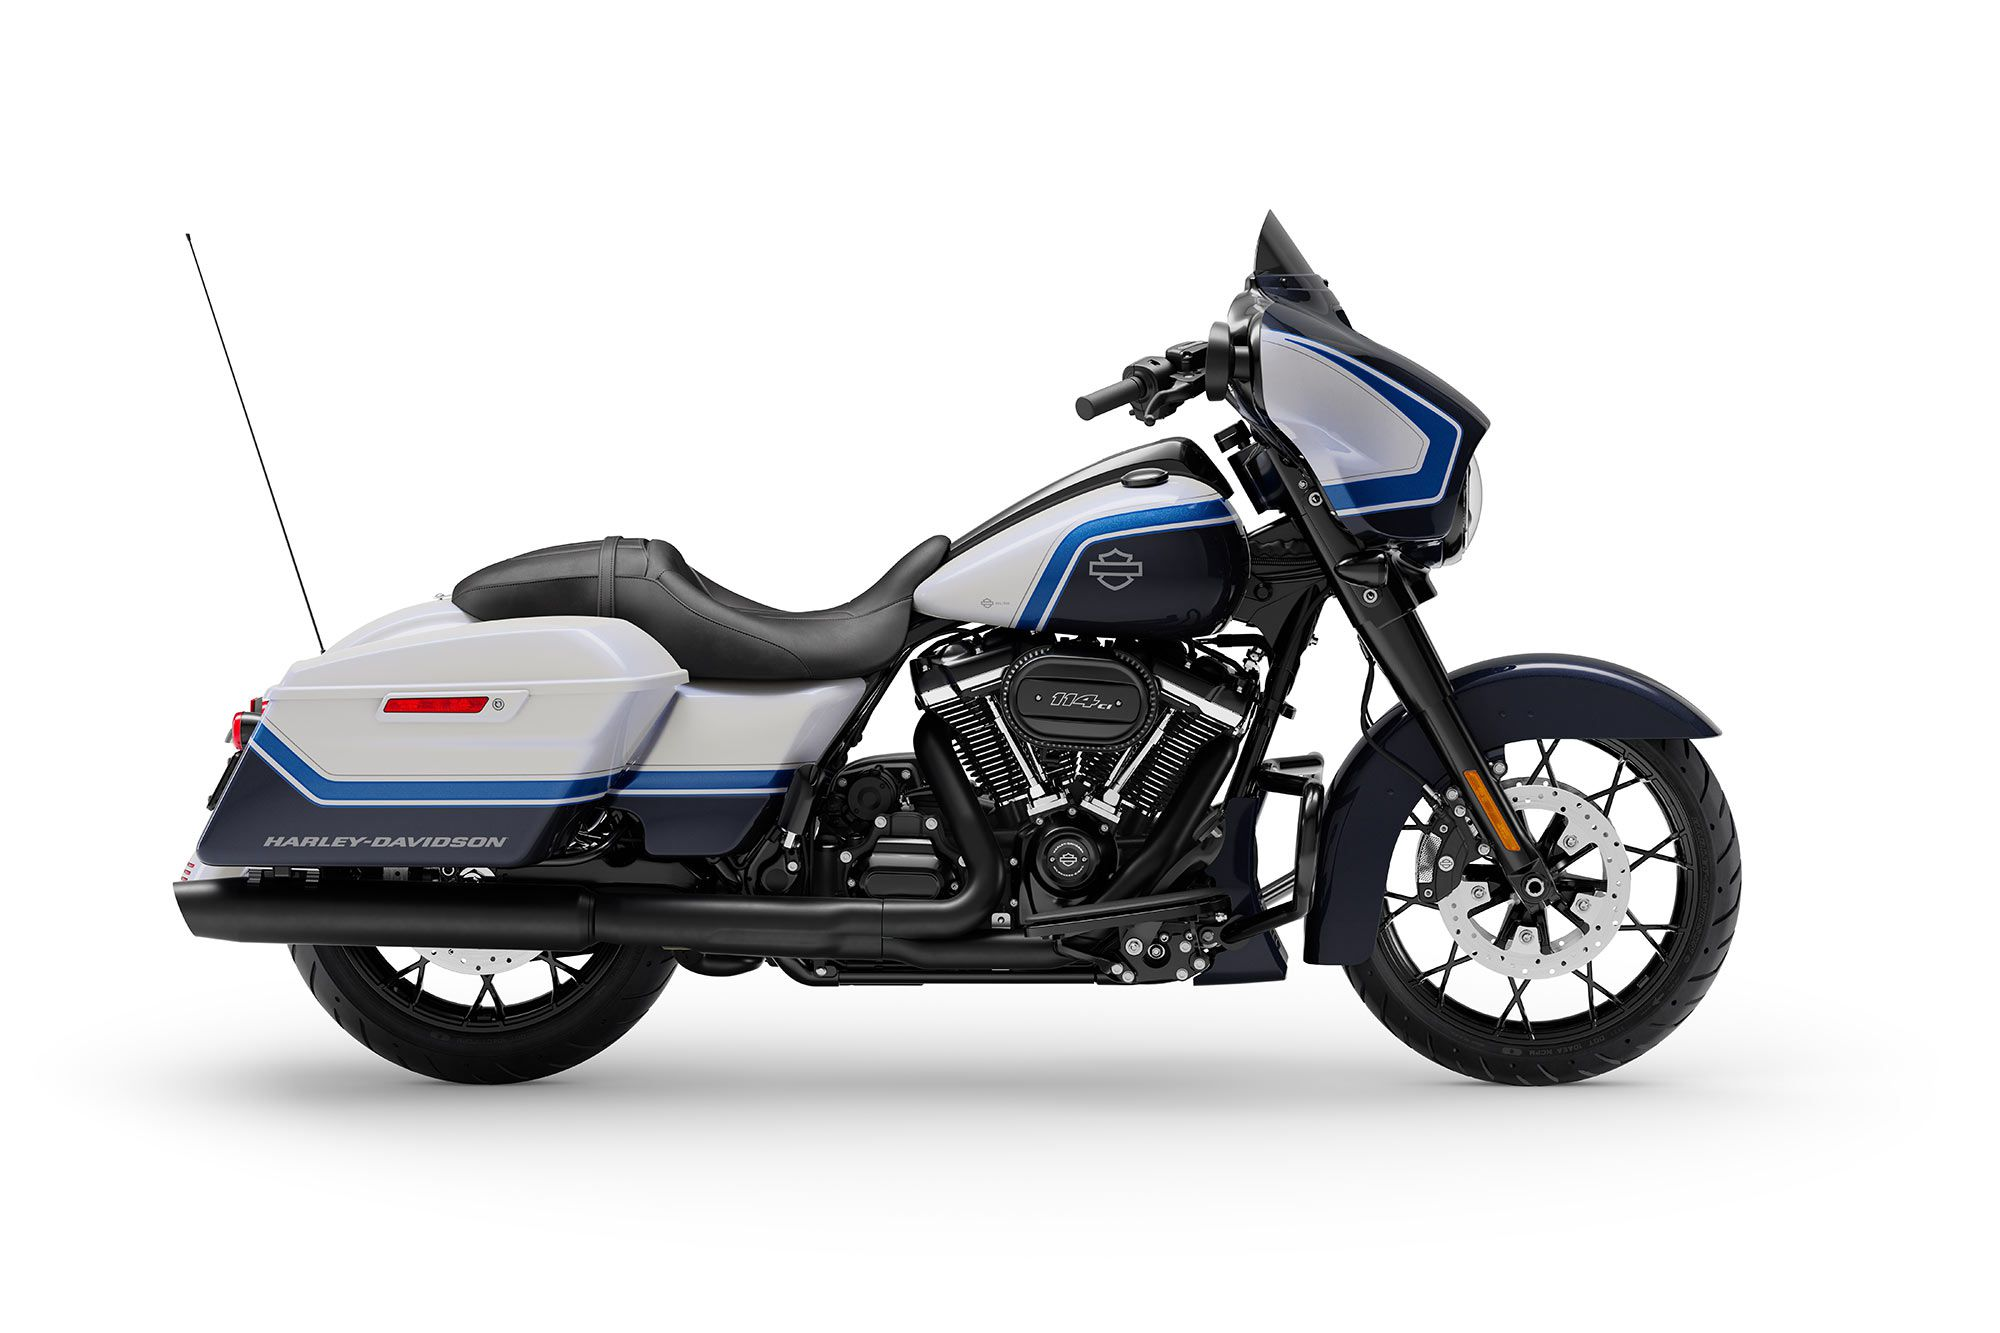 The Street Glide Special in Arctic Blast has an MSRP of $38,899.